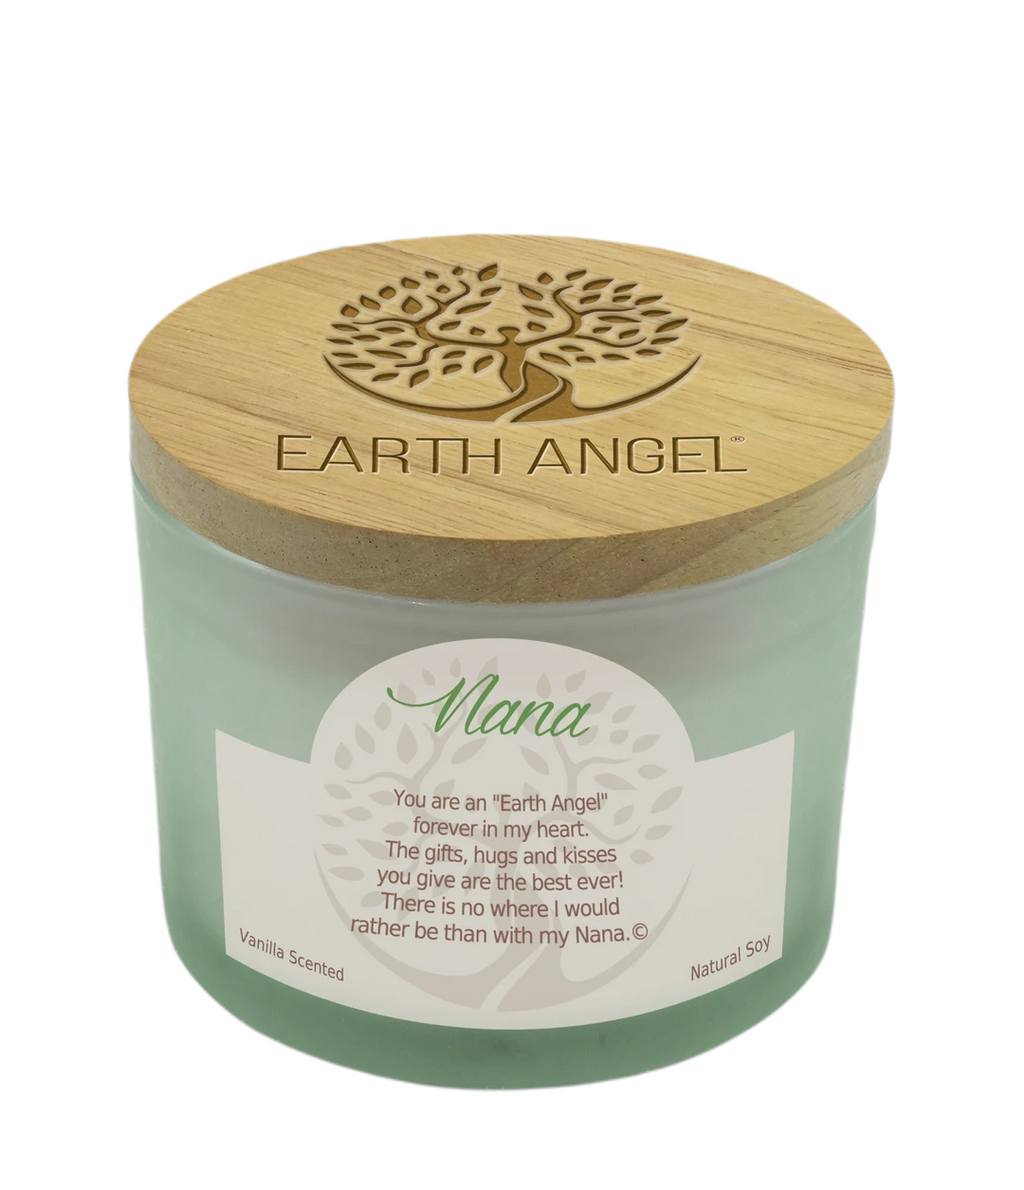 Earth Angel Natural Soy Candle 12 Ounce Nana